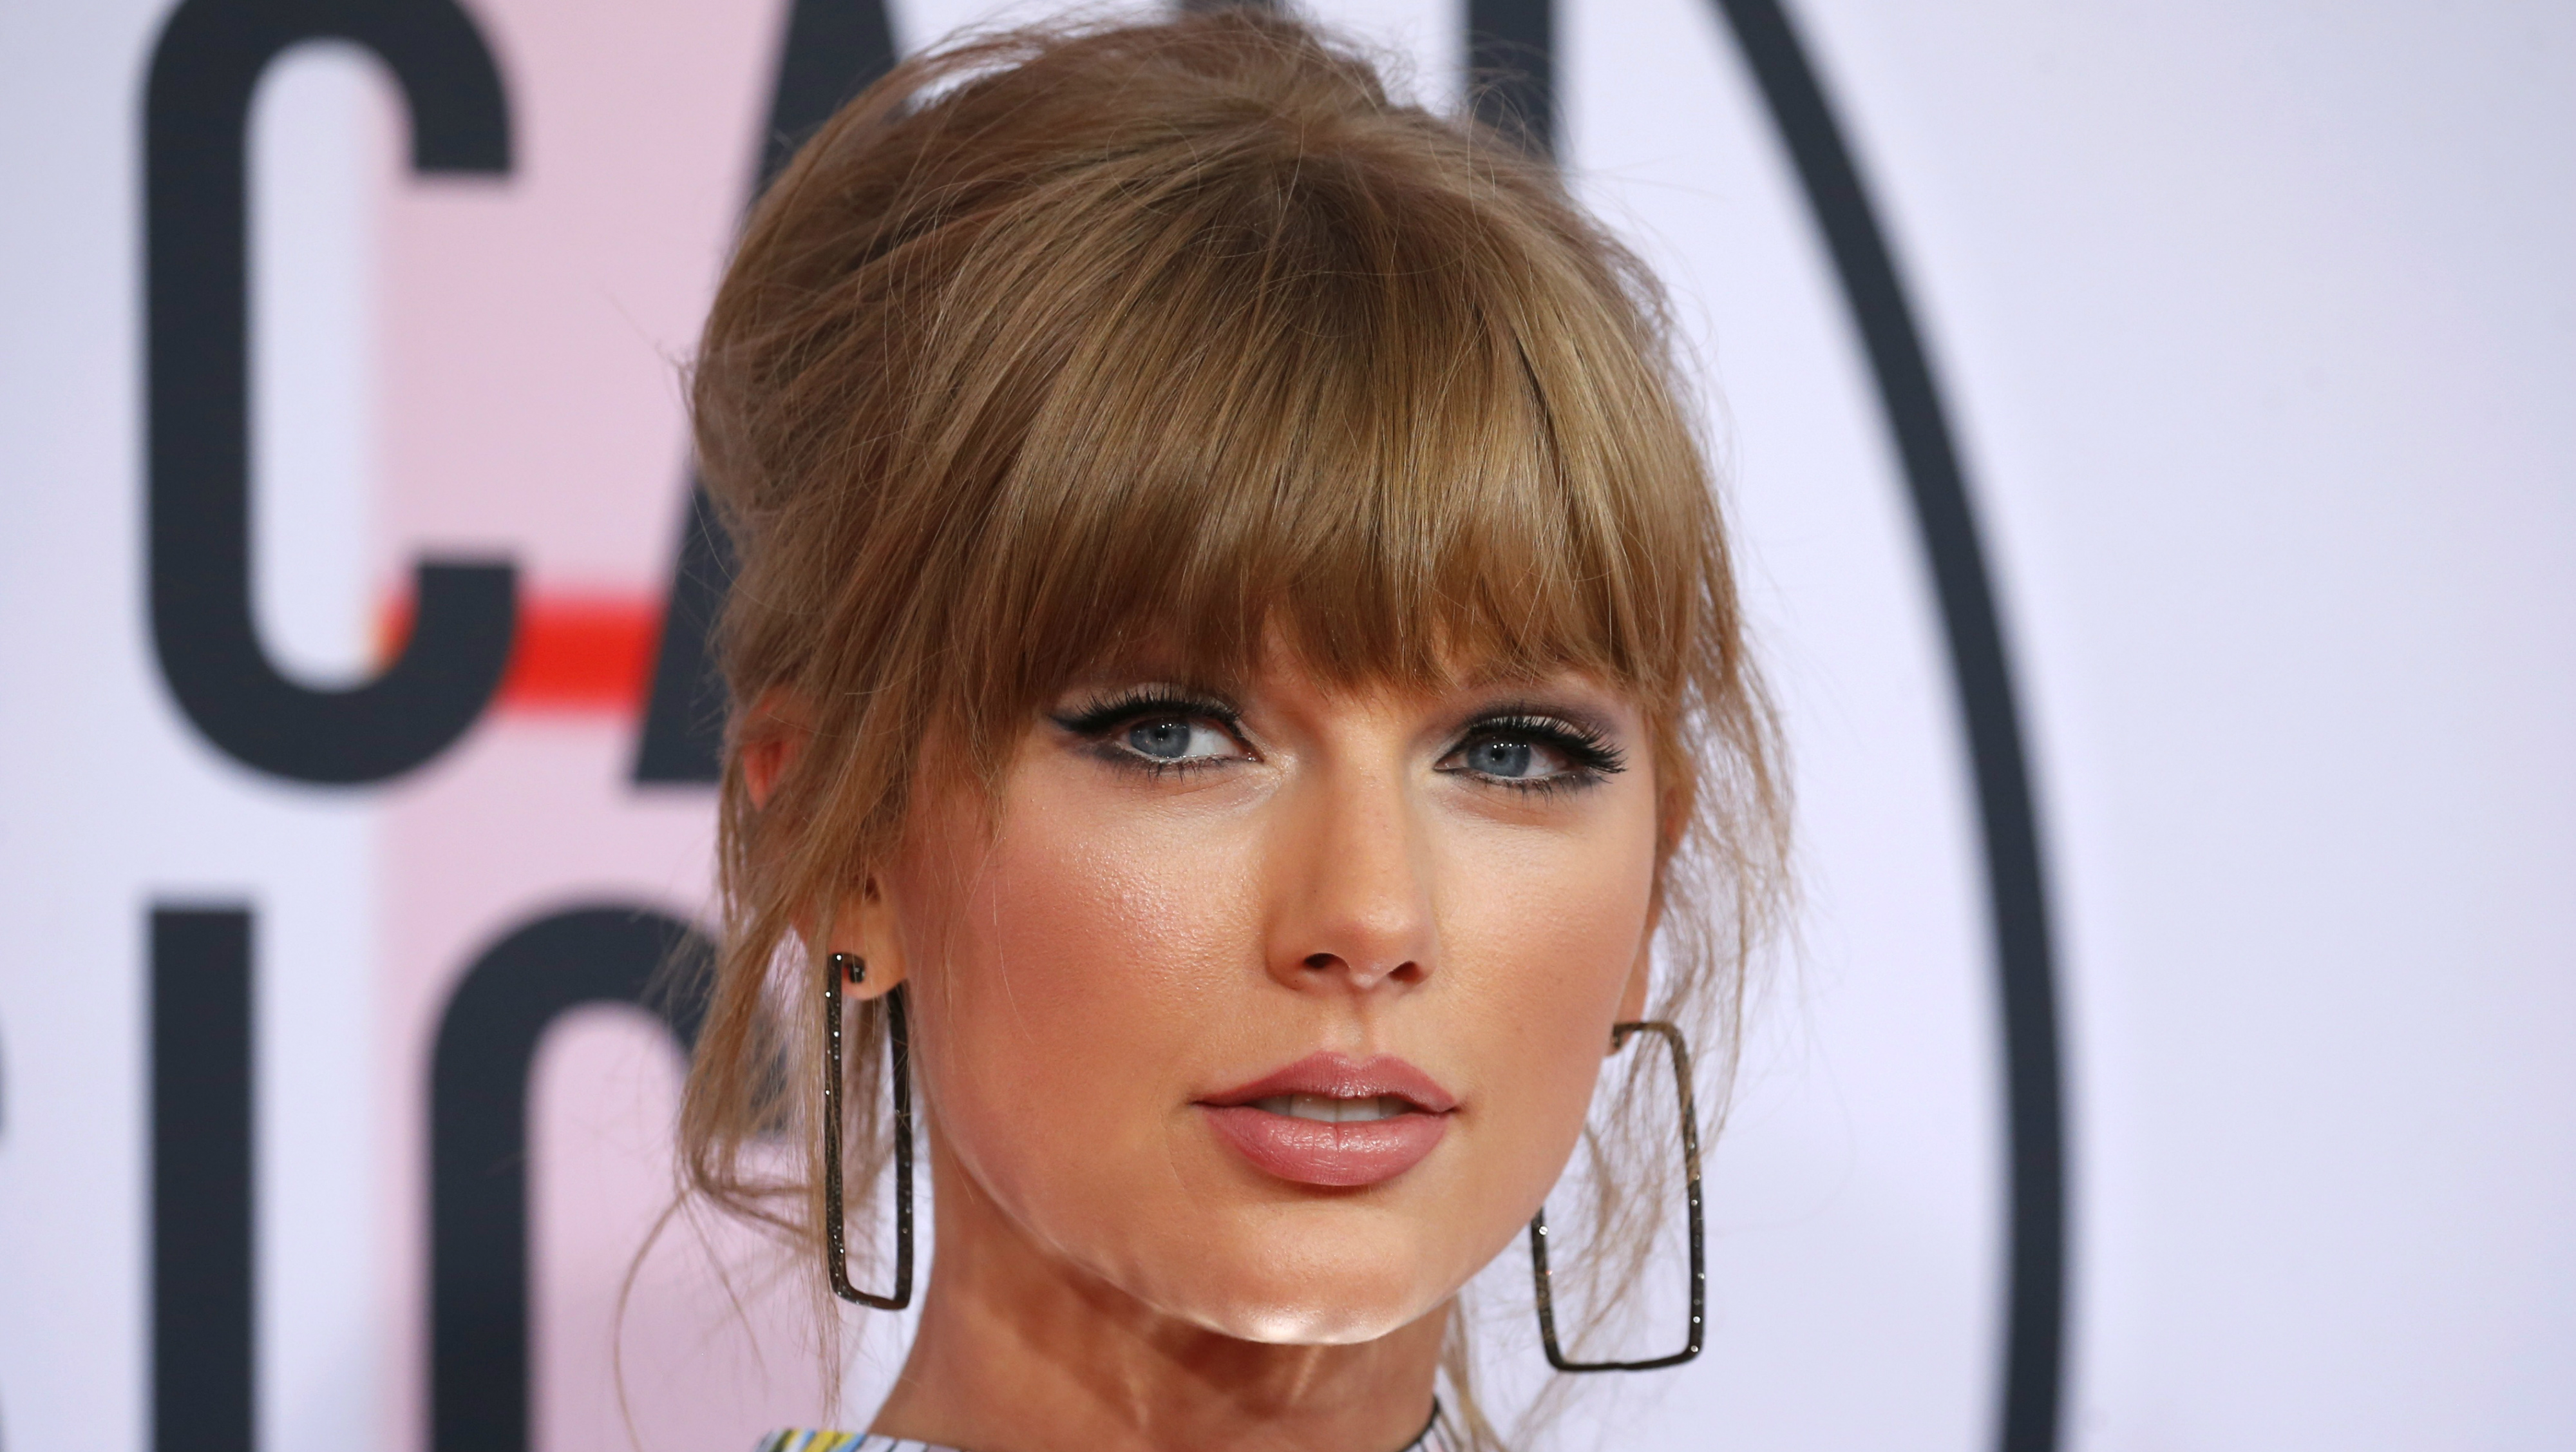 An image of Taylor Swift.